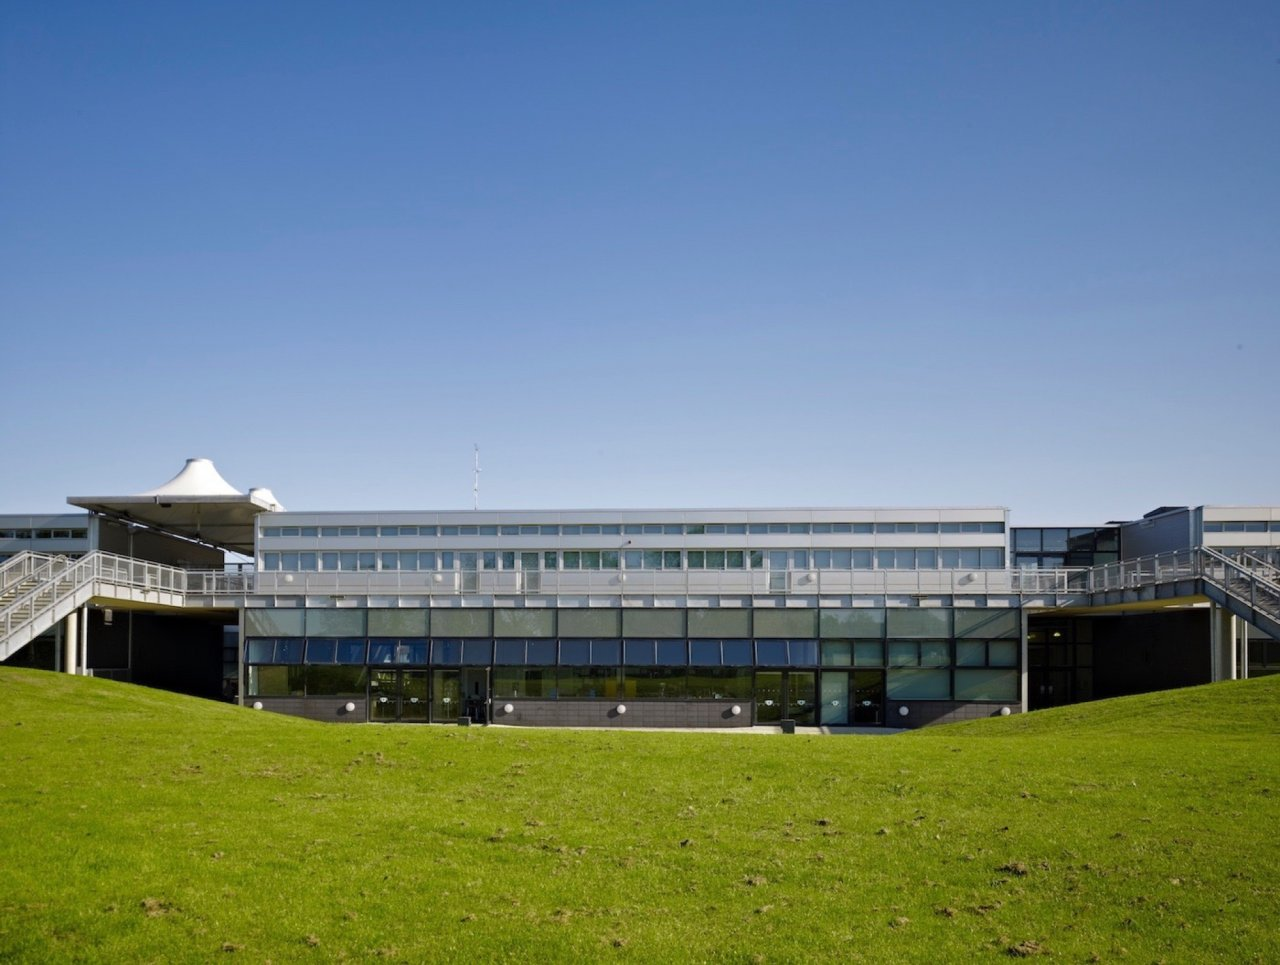 Catmose College, East Midlands